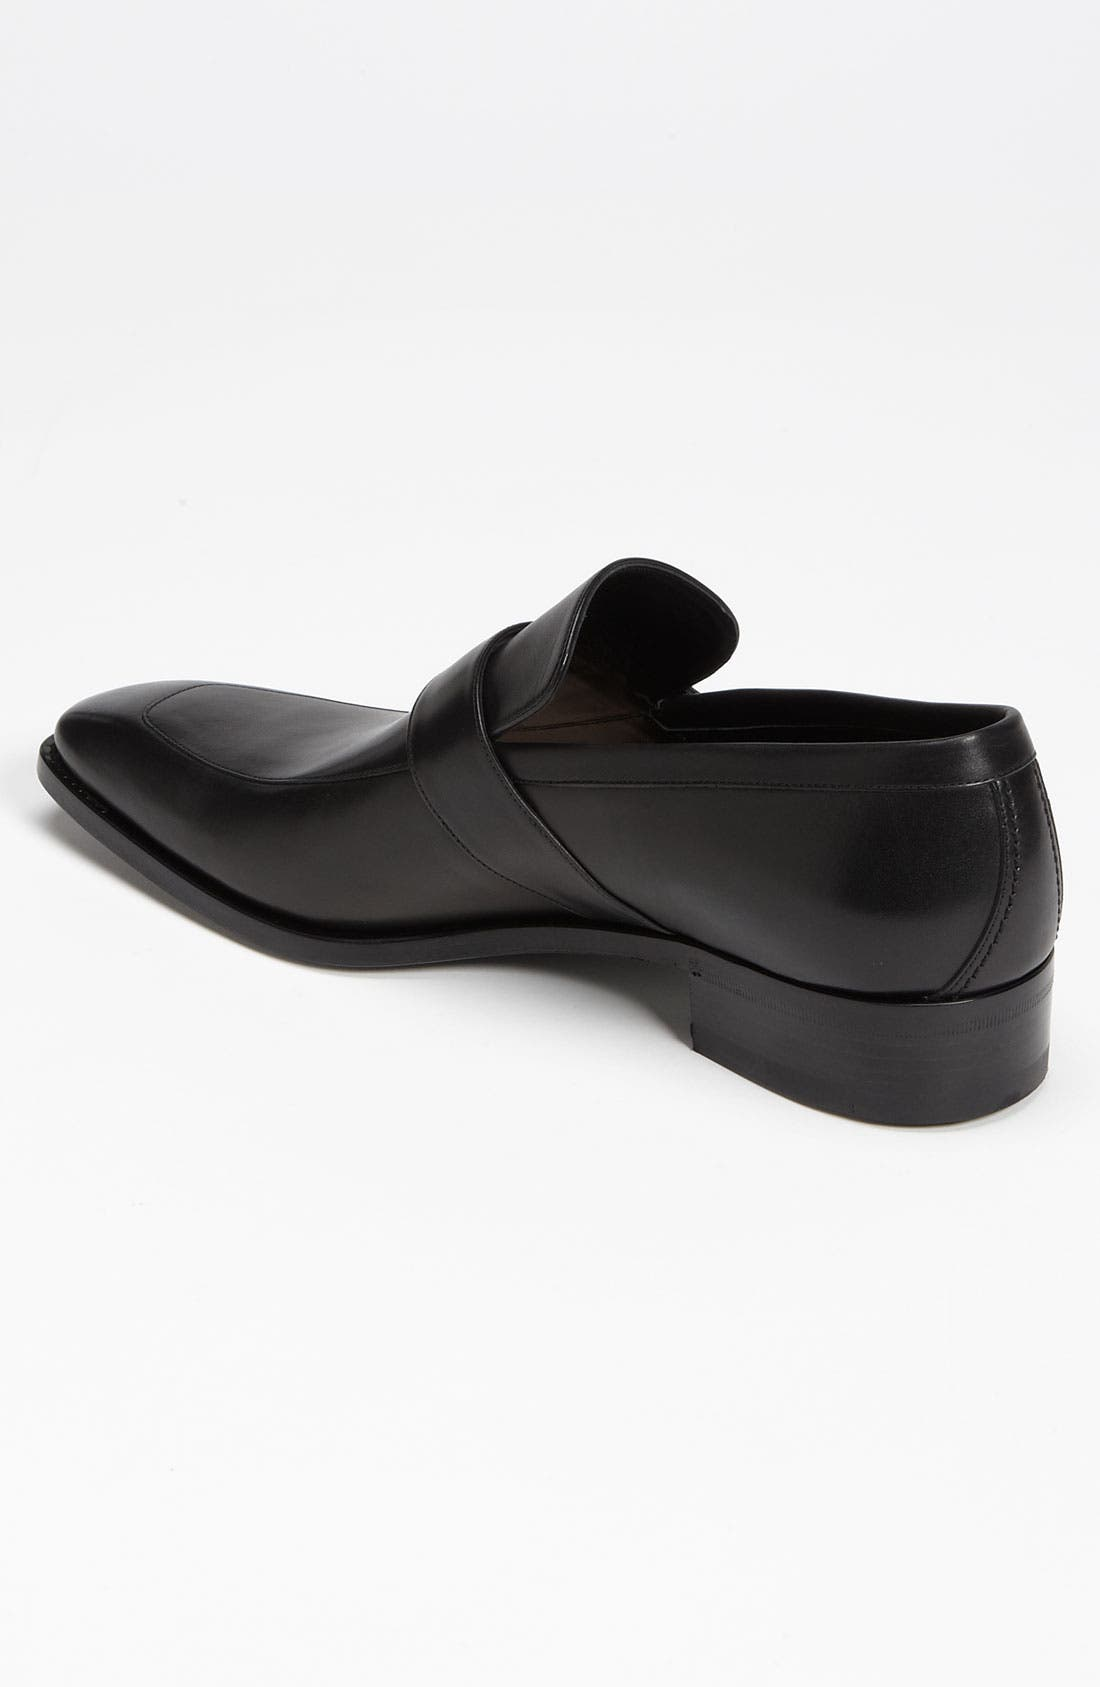 GUCCI,                             'Double G' Loafer,                             Alternate thumbnail 3, color,                             005